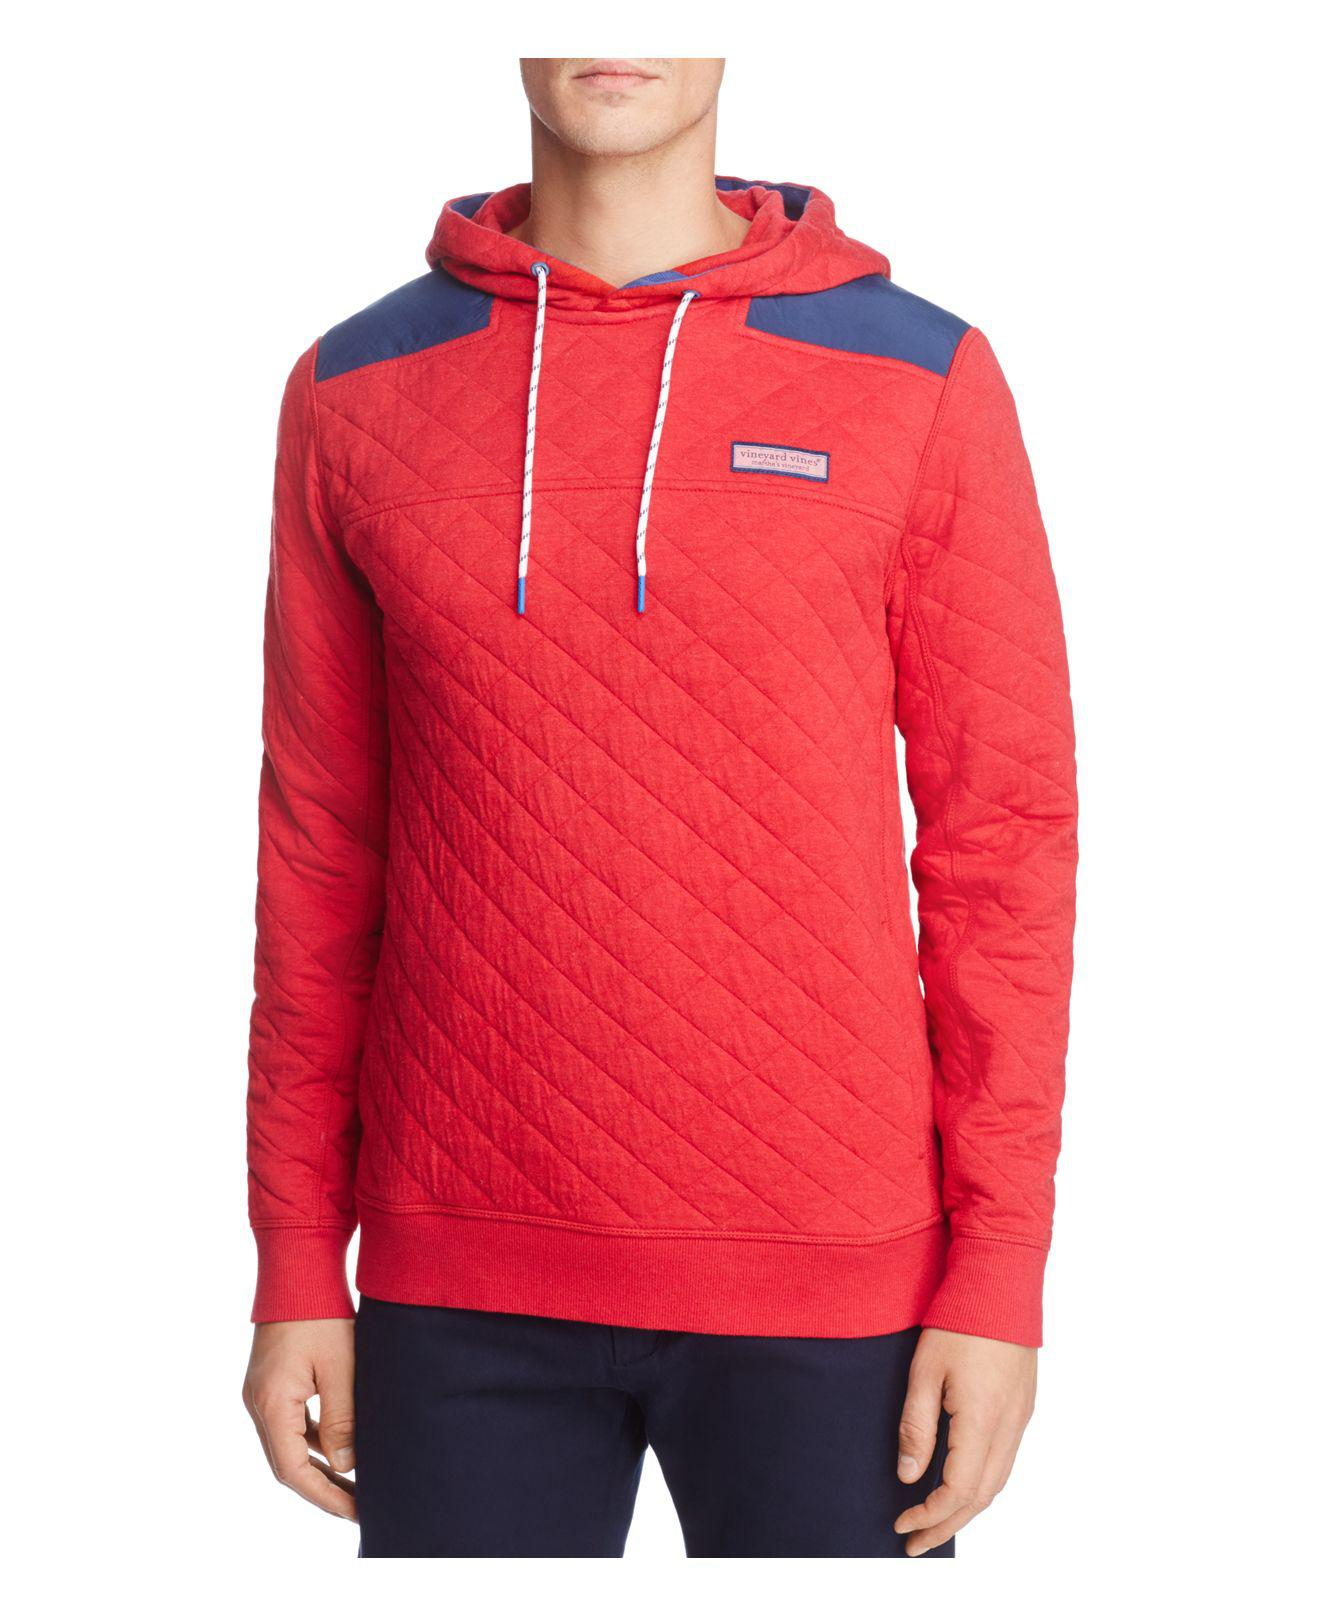 Vineyard Vines Shep Quilted Pullover Hoodie In Red For Men